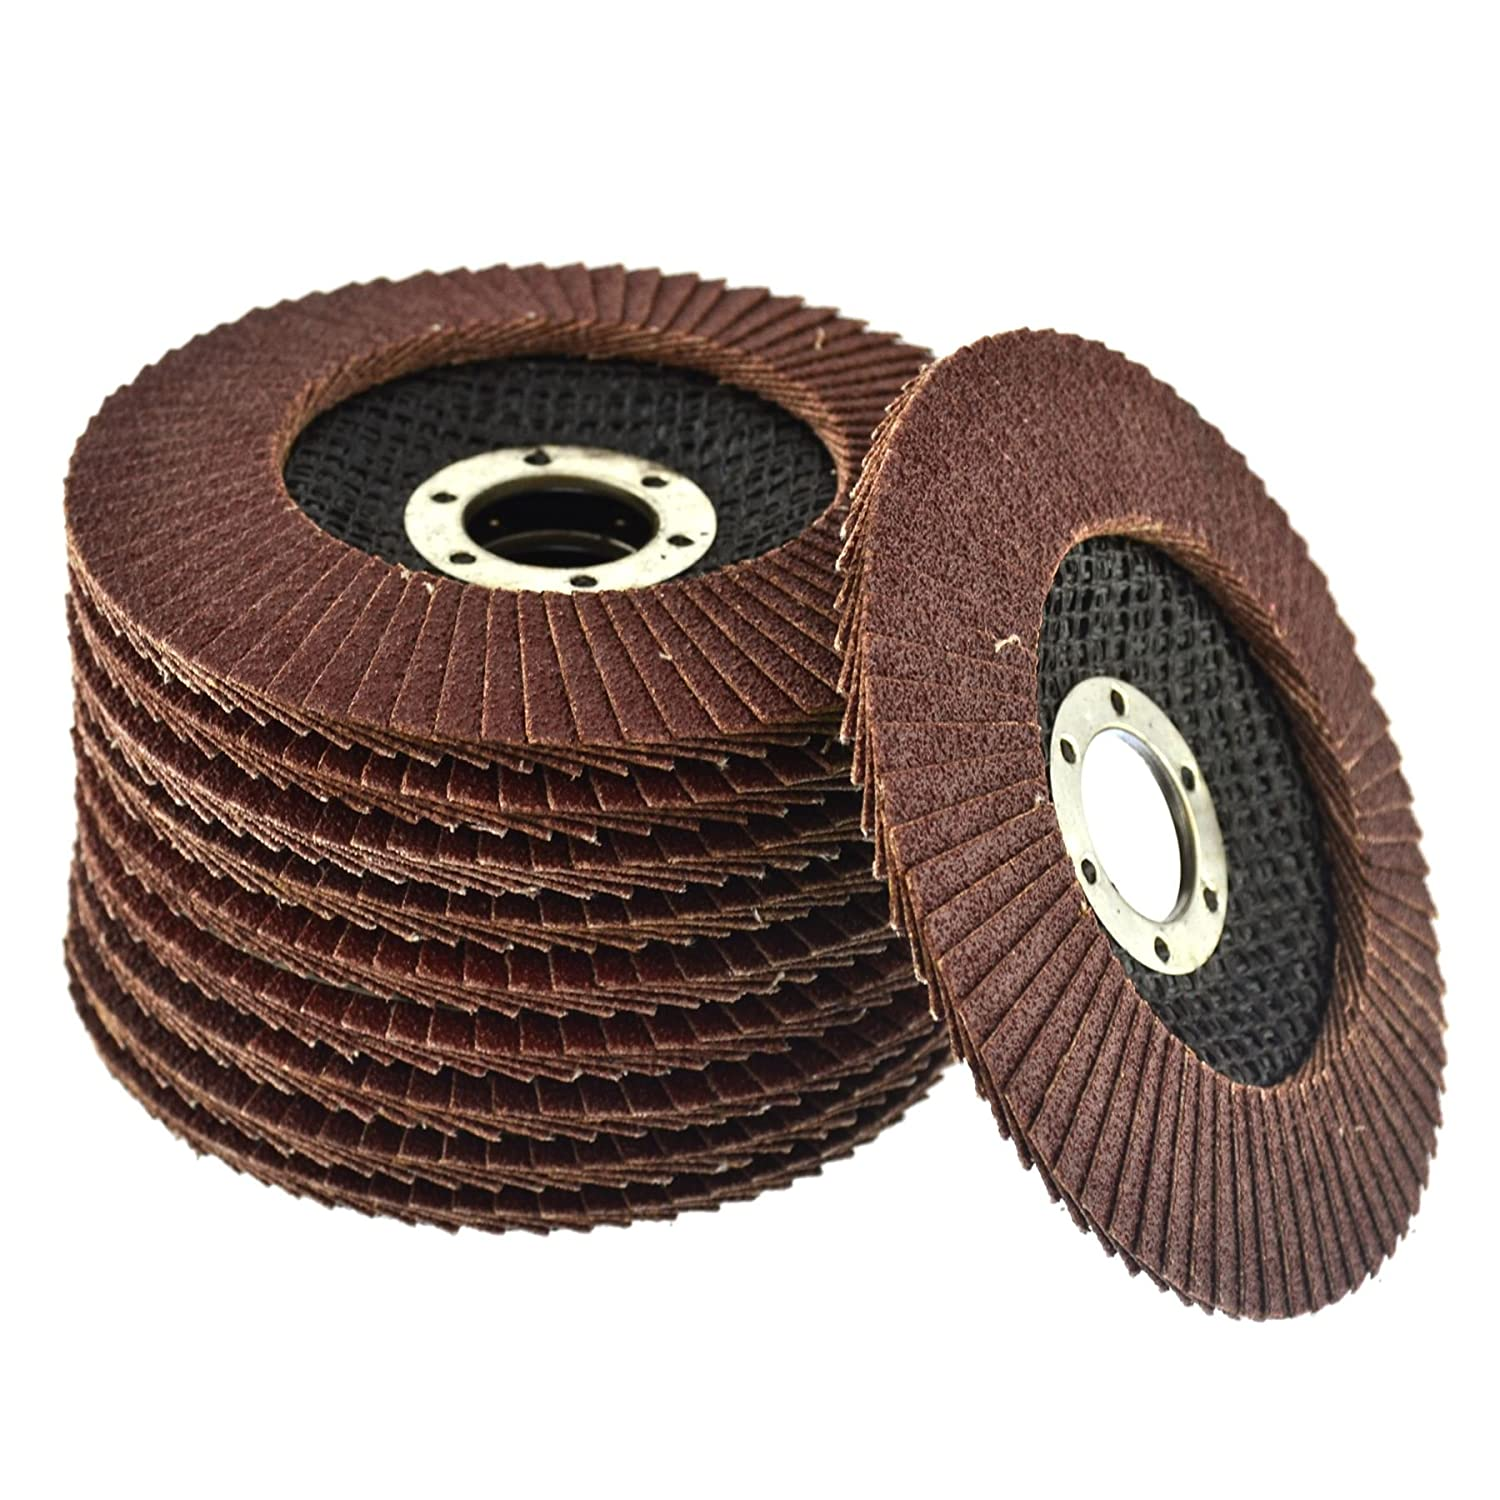 20 x Flap Discs 80 Grit Angle Grinder 4.5' (115mm) Flat Sanding Grinding AU014 AB Tools